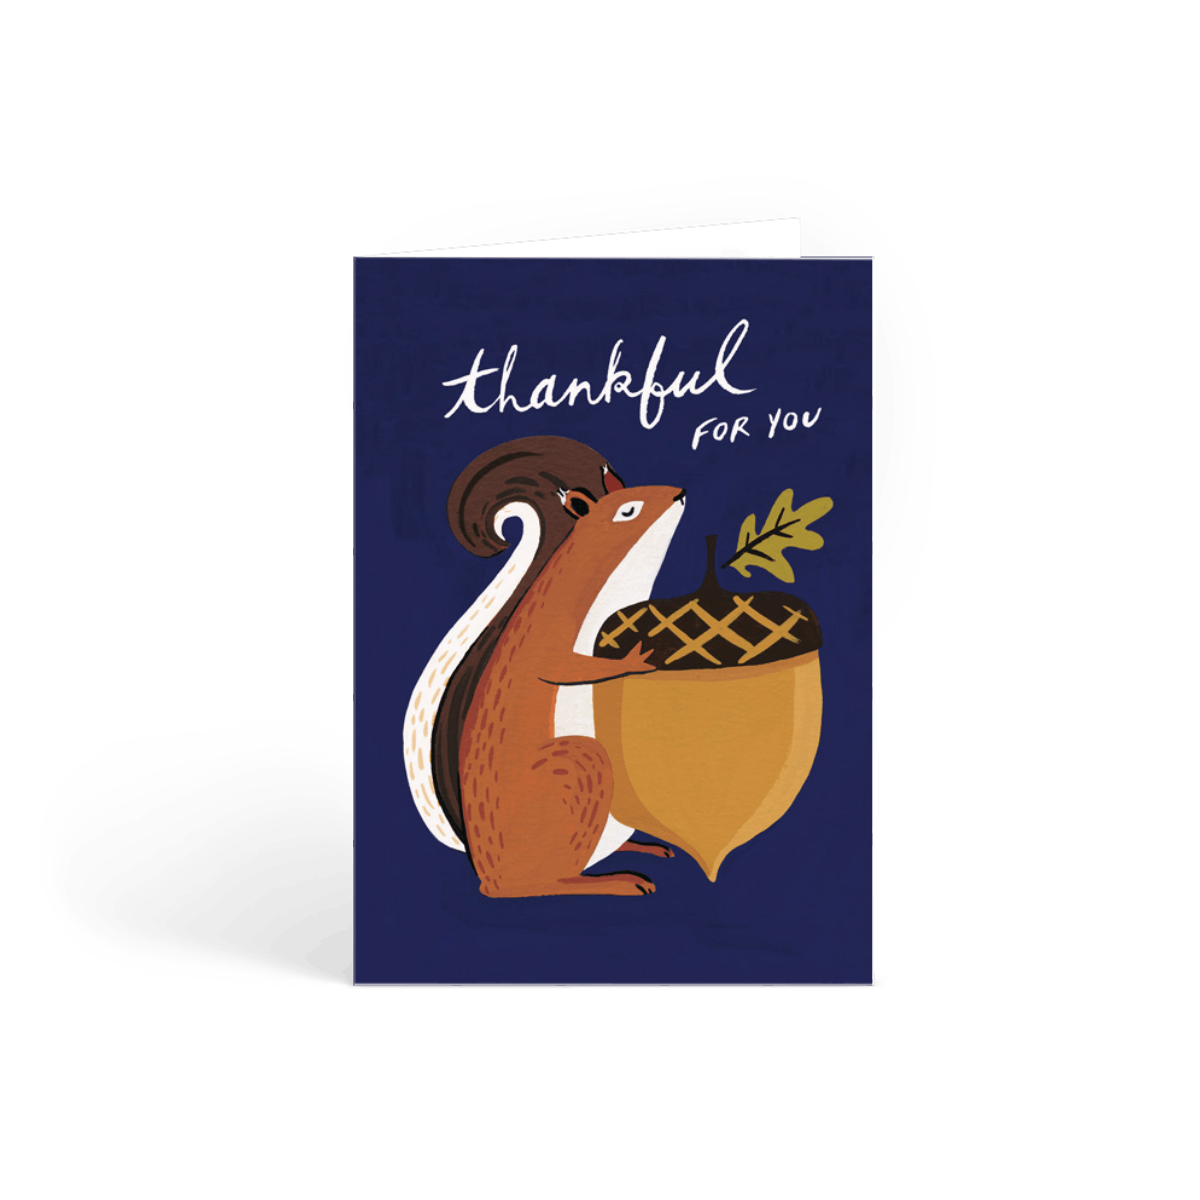 Https%3a%2f%2fwww.papier.com%2fproduct image%2f10996%2f2%2fthanksgiving squirrel 2798 front 1473762927.png?ixlib=rb 1.1